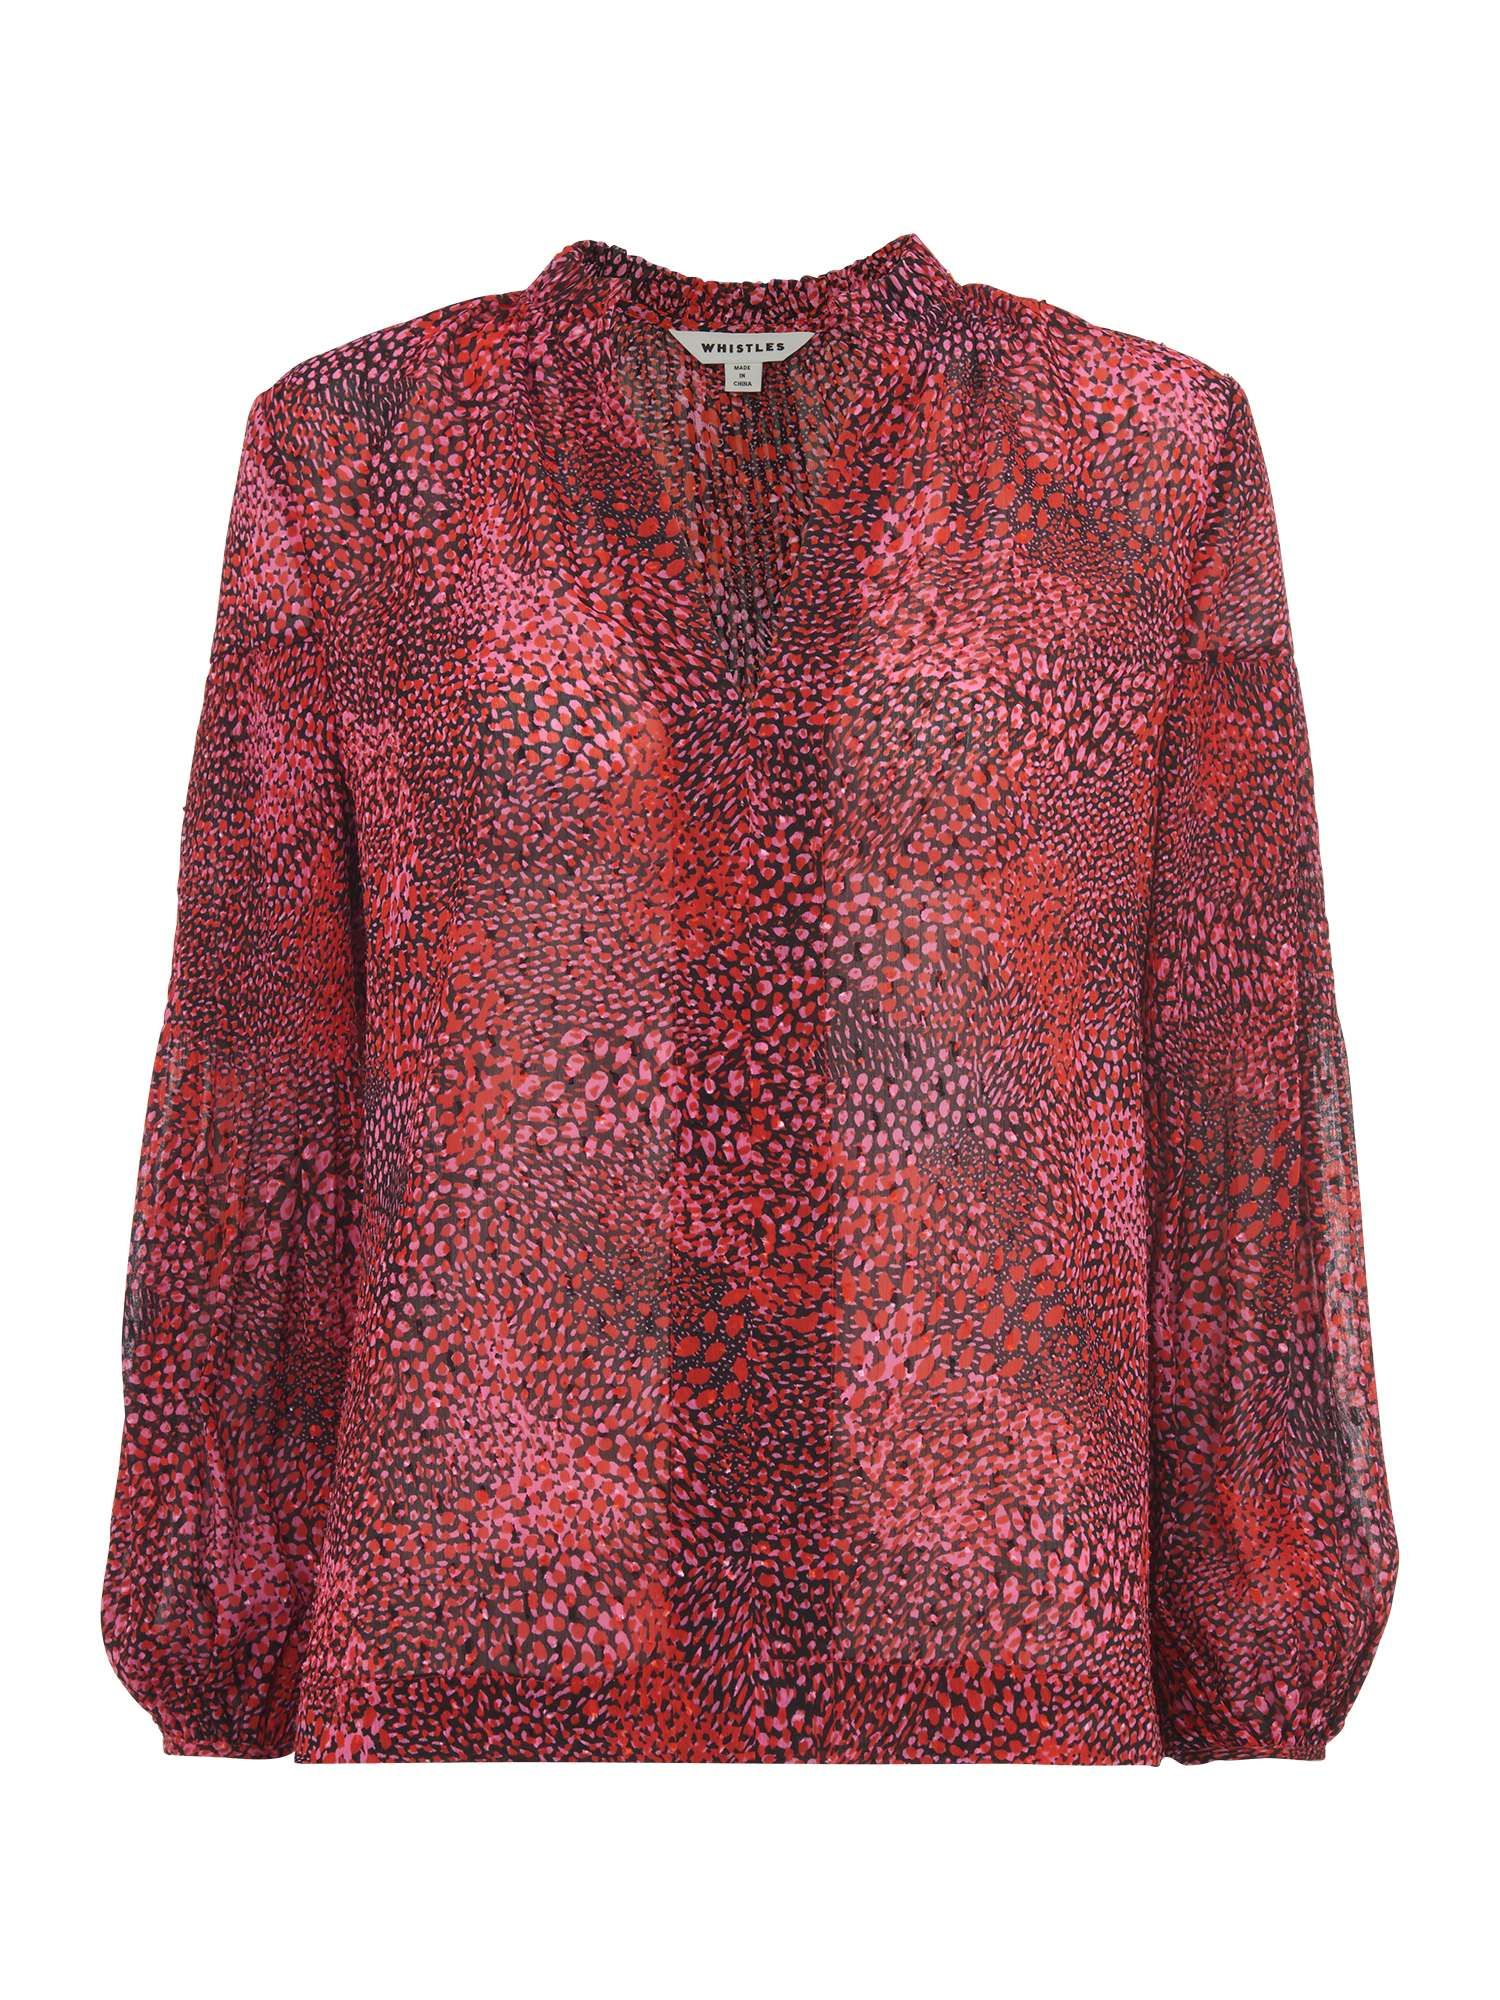 b9dd7a1bf3d1 Whistles Abstract Animal Print Blouse - House of Fraser | PRE-FALL ...